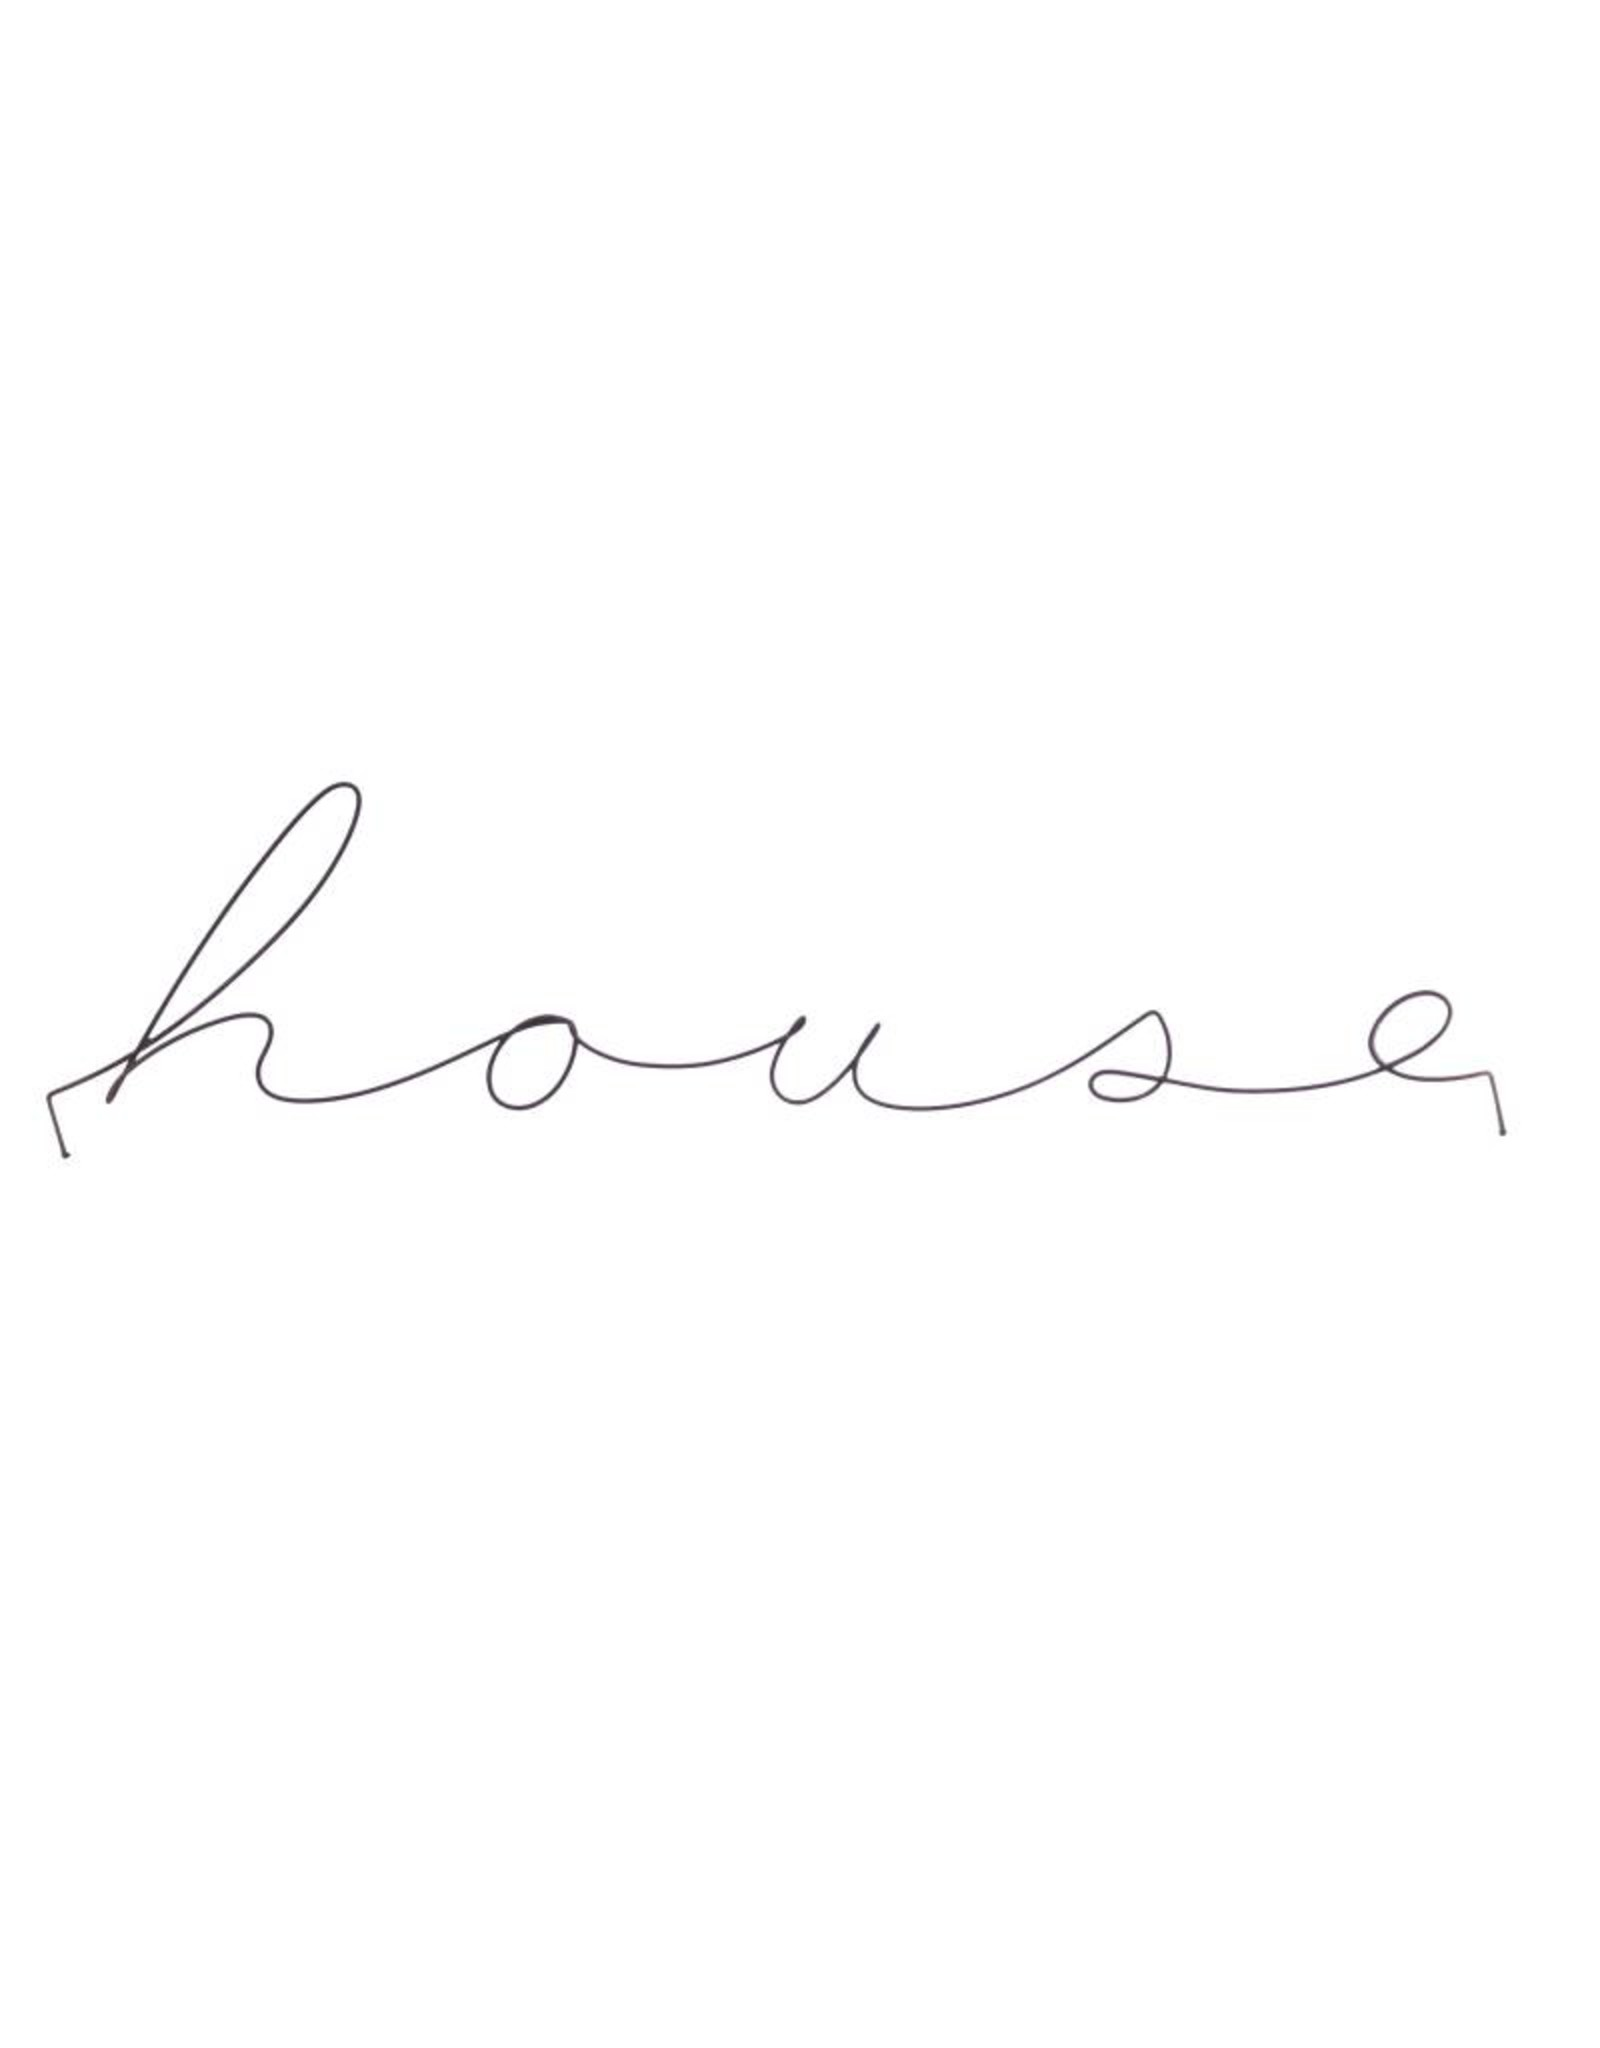 Gauge NYC 'house' Wire Word Poetic